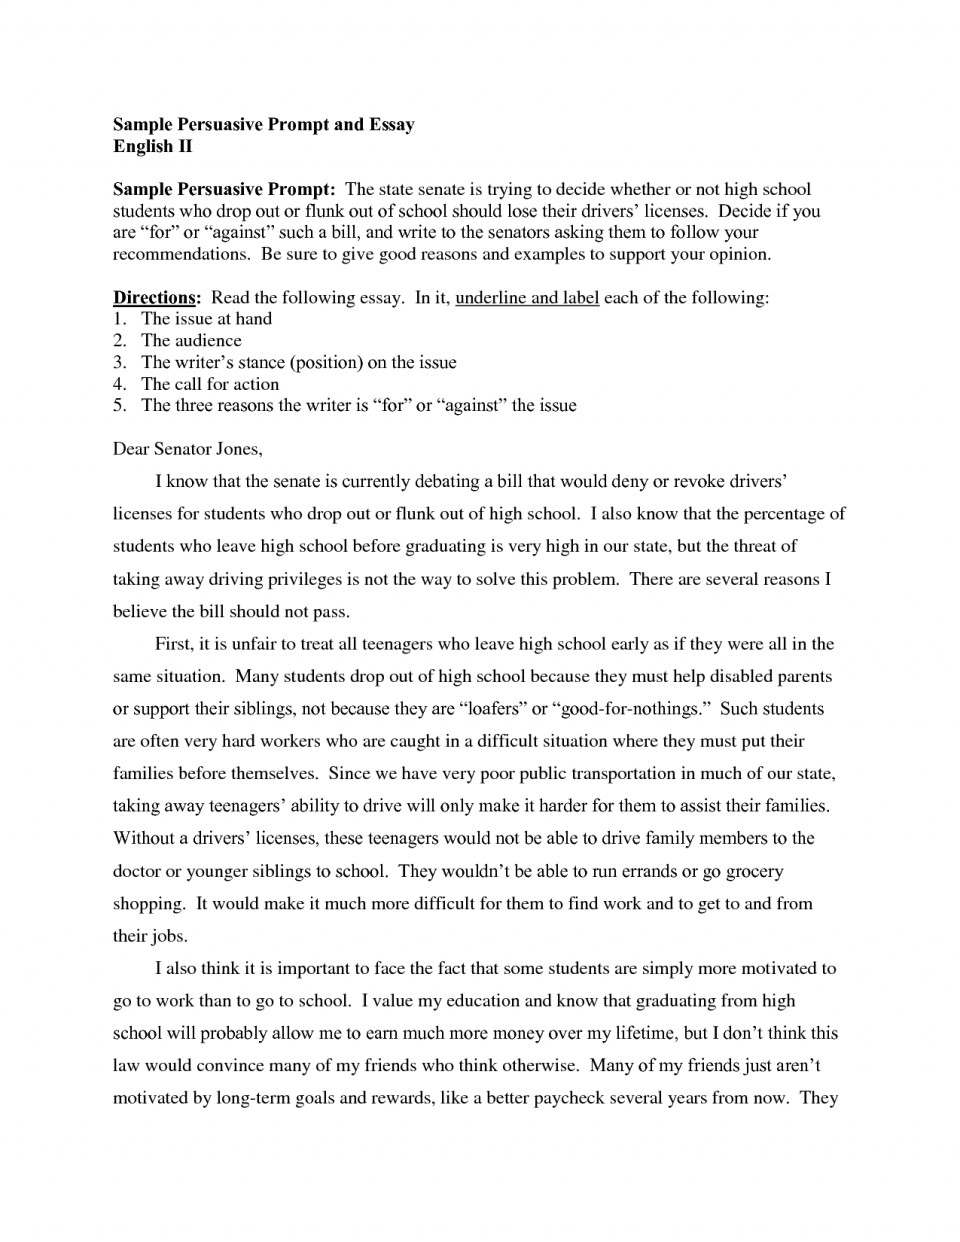 013 Research Paper Easy Topic Persuasive Essay Topics For High School Sample Ideas Highschool Students Good Prompt Funny Fun List Of Seniors Writing English Sensational Biology Science 960